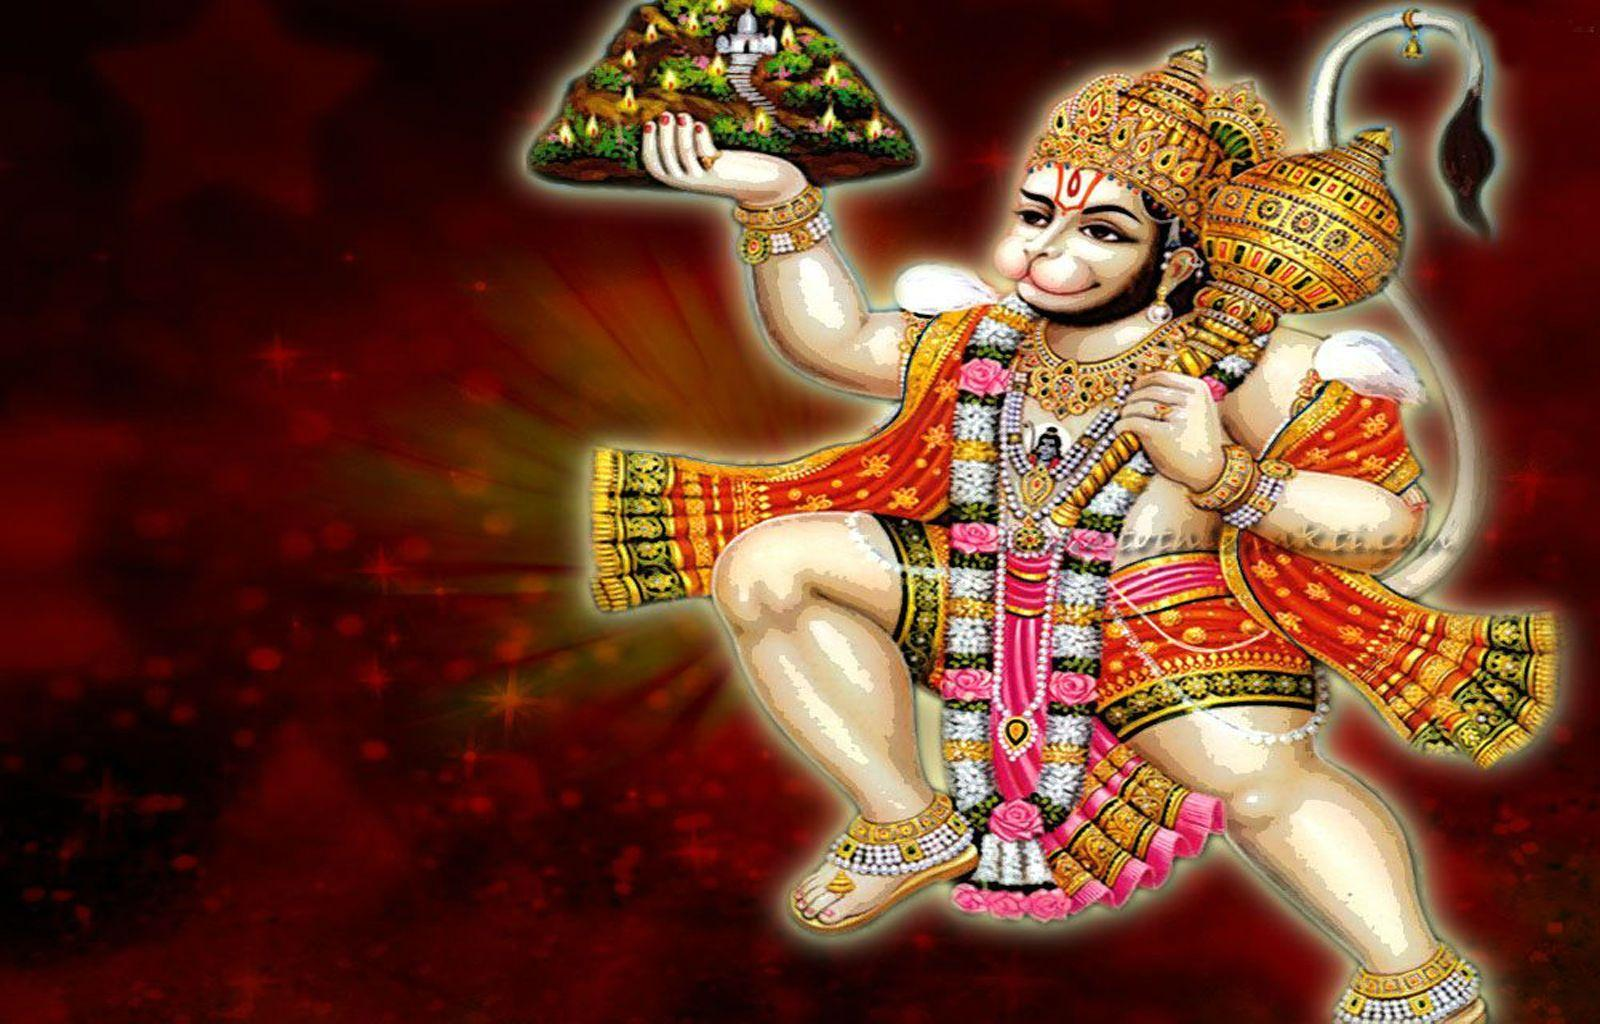 Free download Hanuman desktop Wallpaper & images